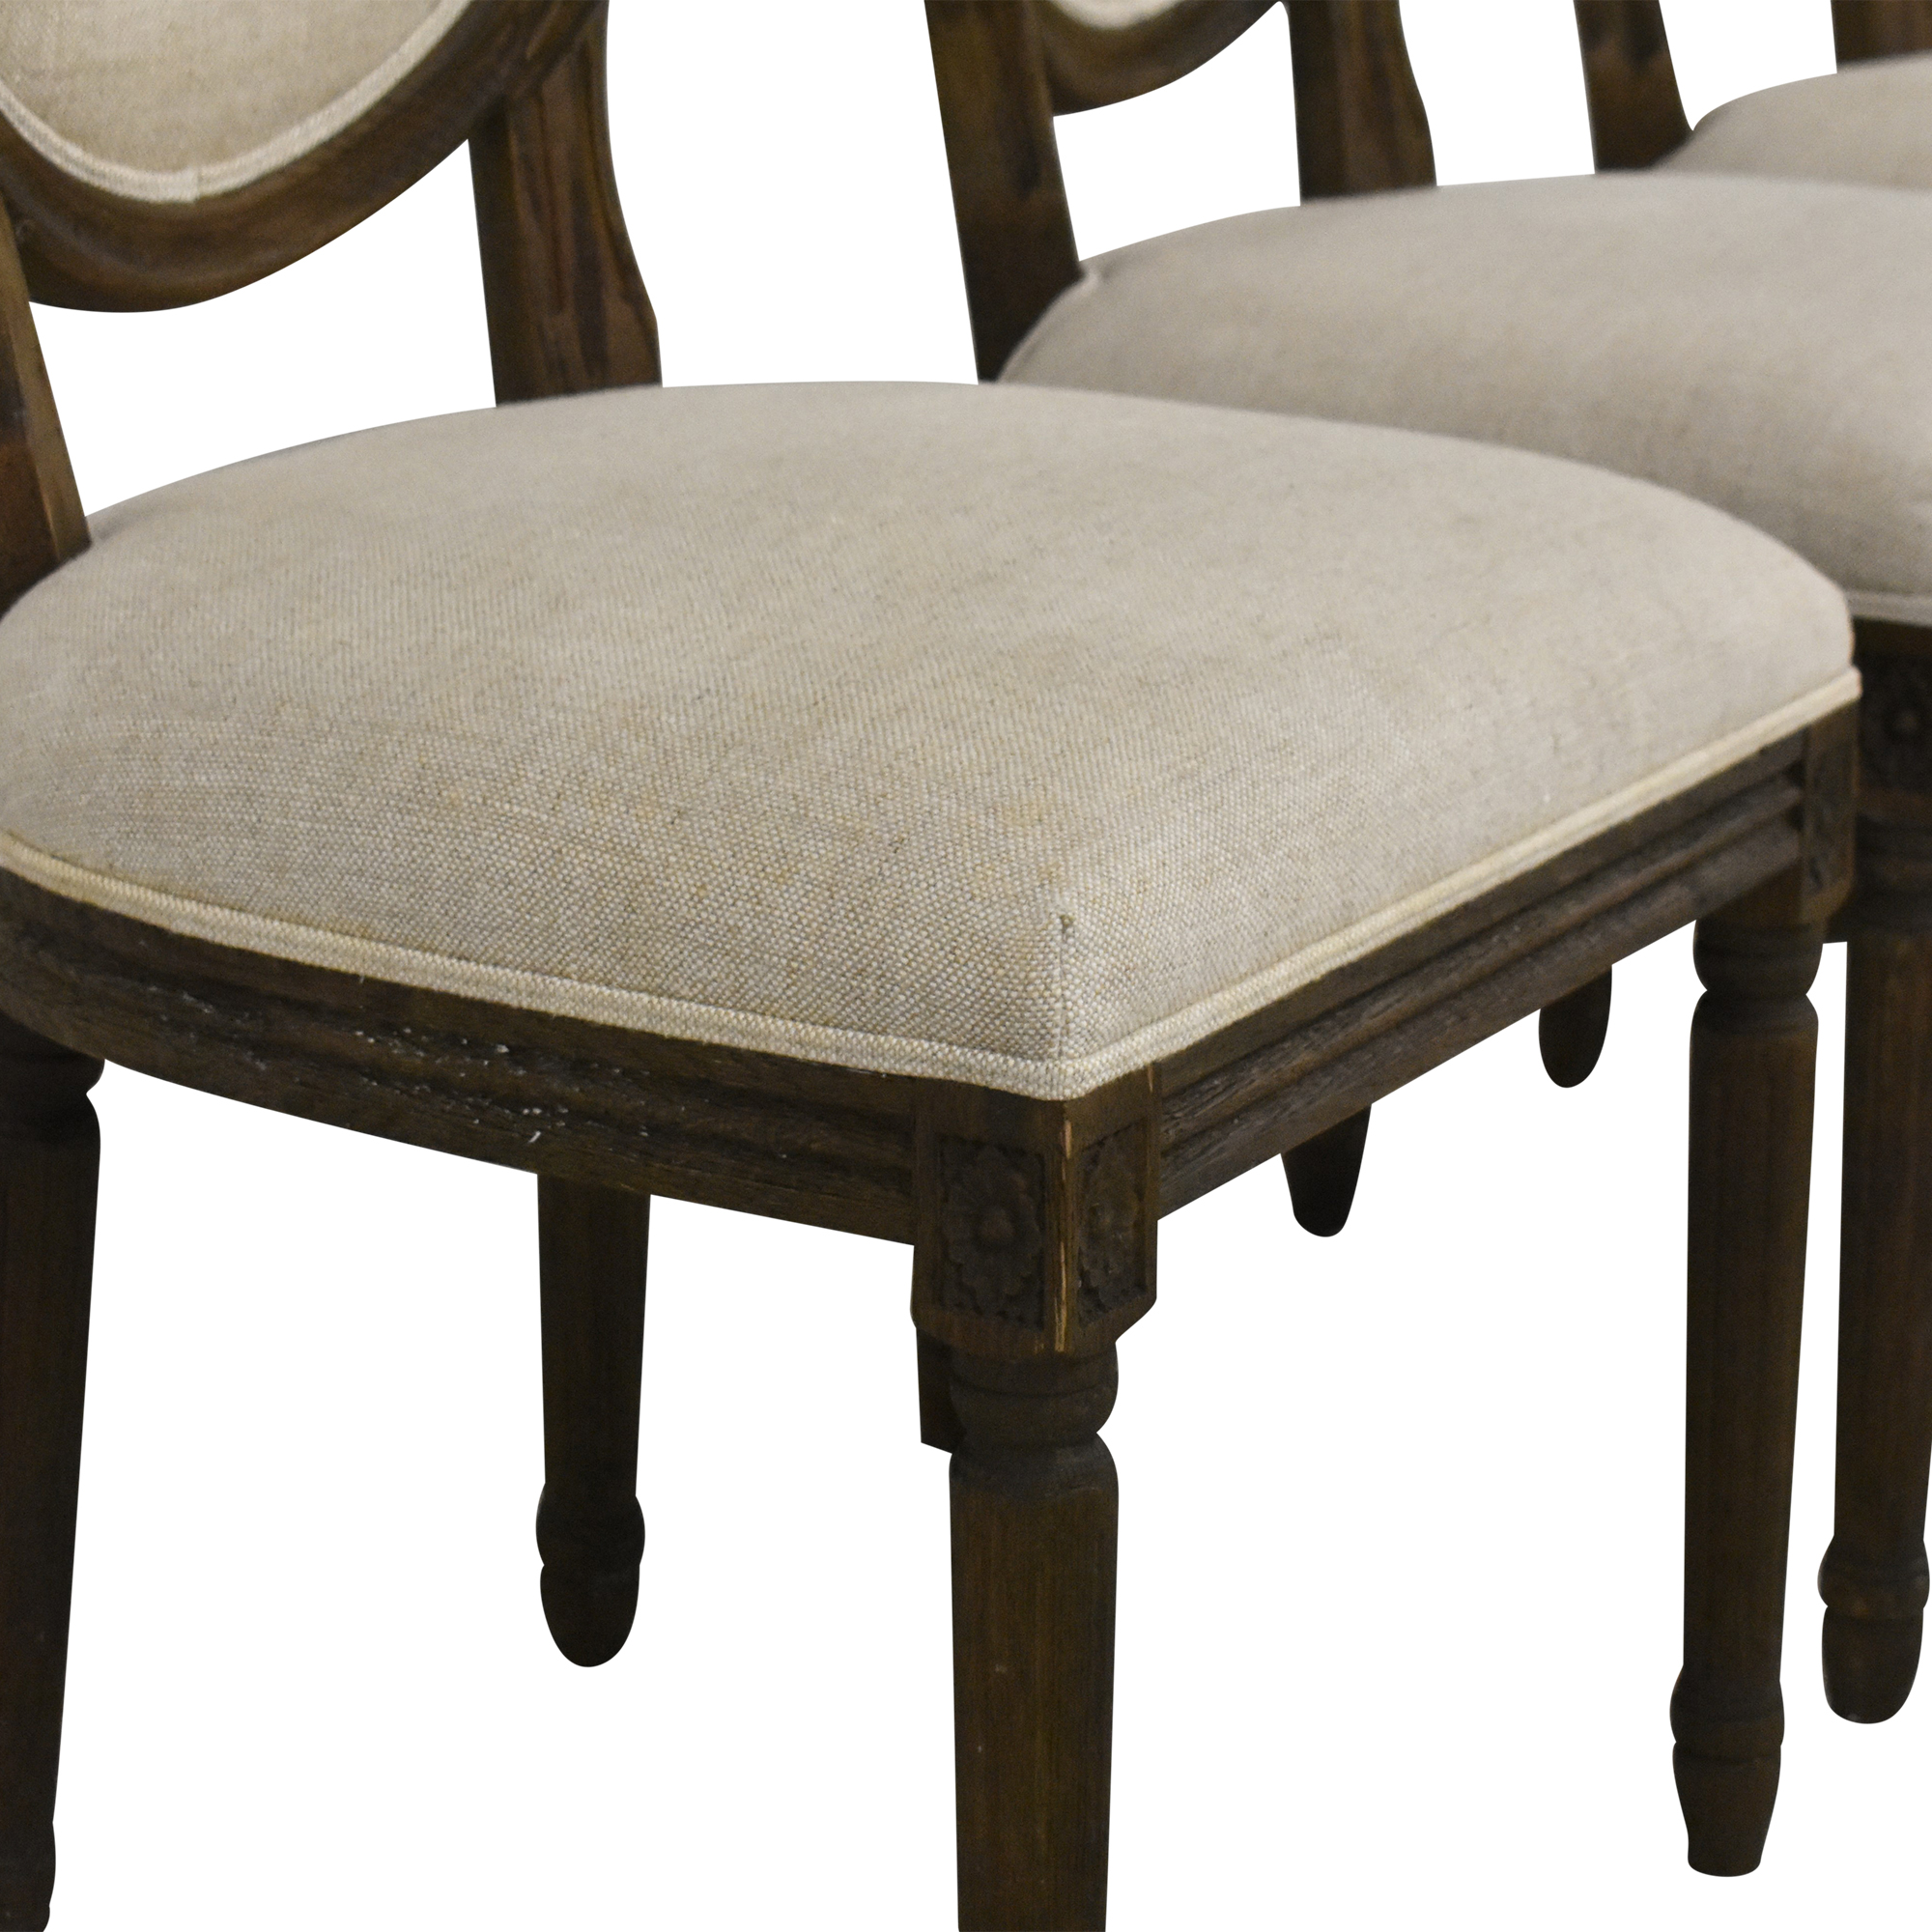 Restoration Hardware Restoration Hardware Vintage French Round Dining Side Chairs ma